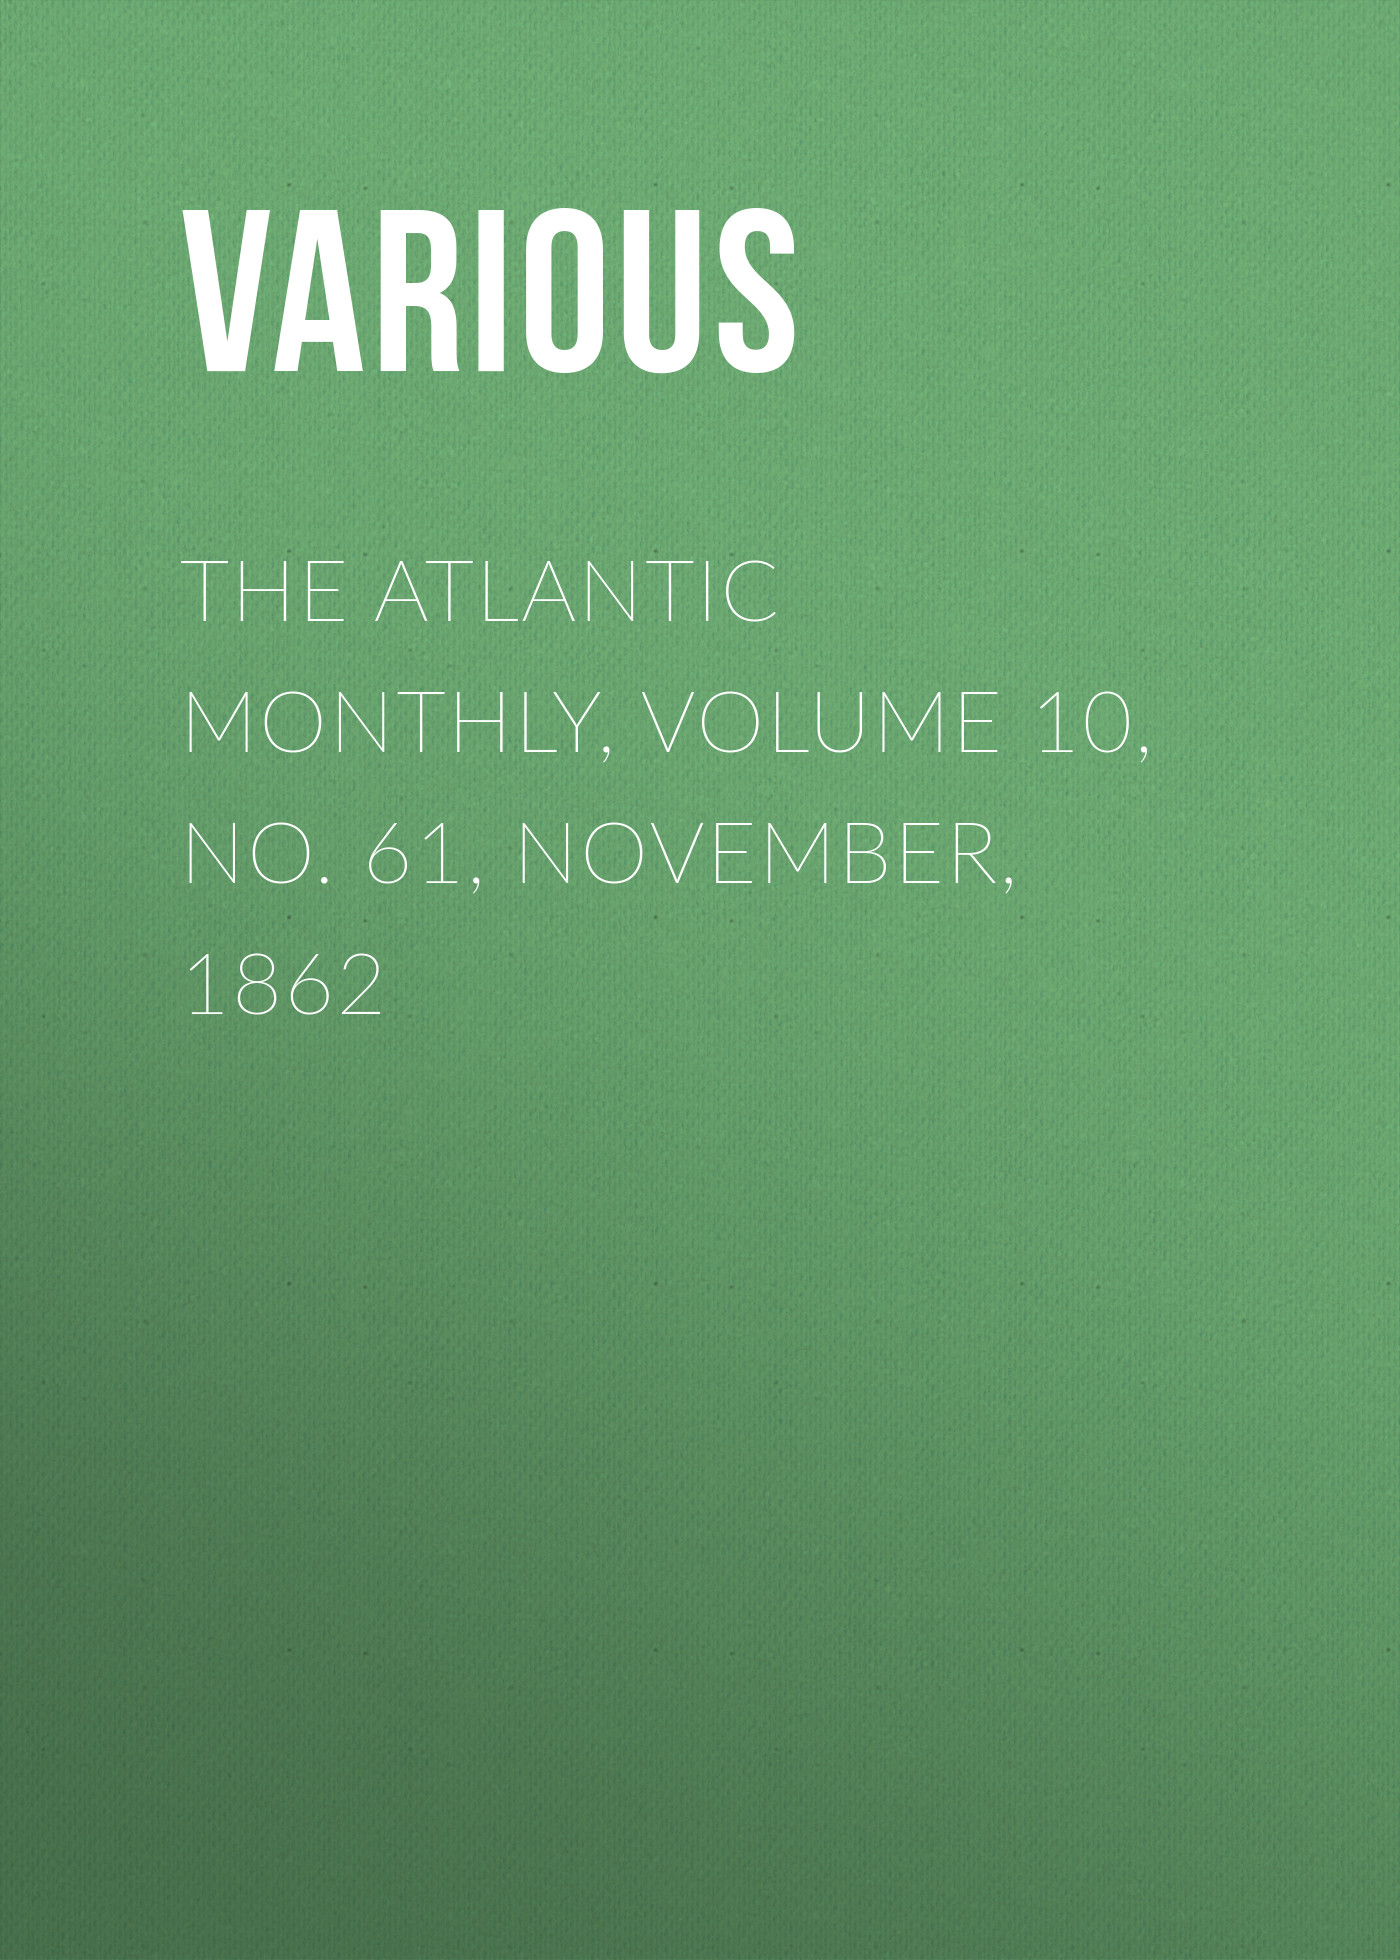 Various The Atlantic Monthly, Volume 10, No. 61, November, 1862 zamir iqbal introduction to islamic economics theory and application